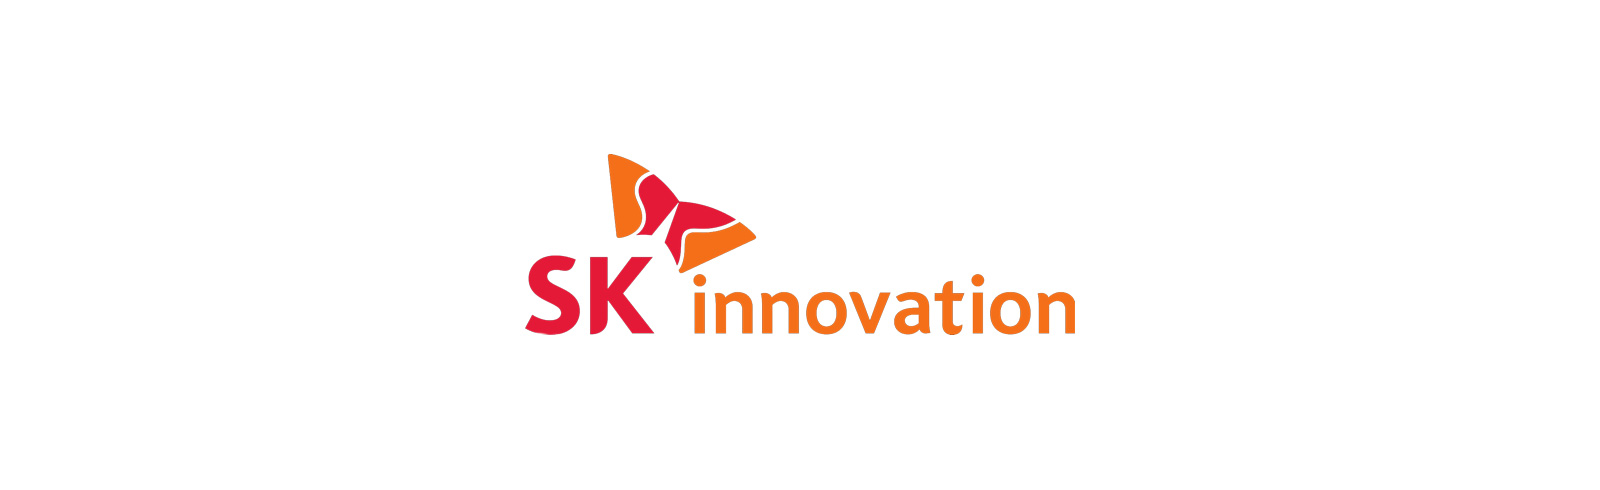 SK Innovation will work with Nobel laureate Prof. John B Goodenough on solid-state batteries